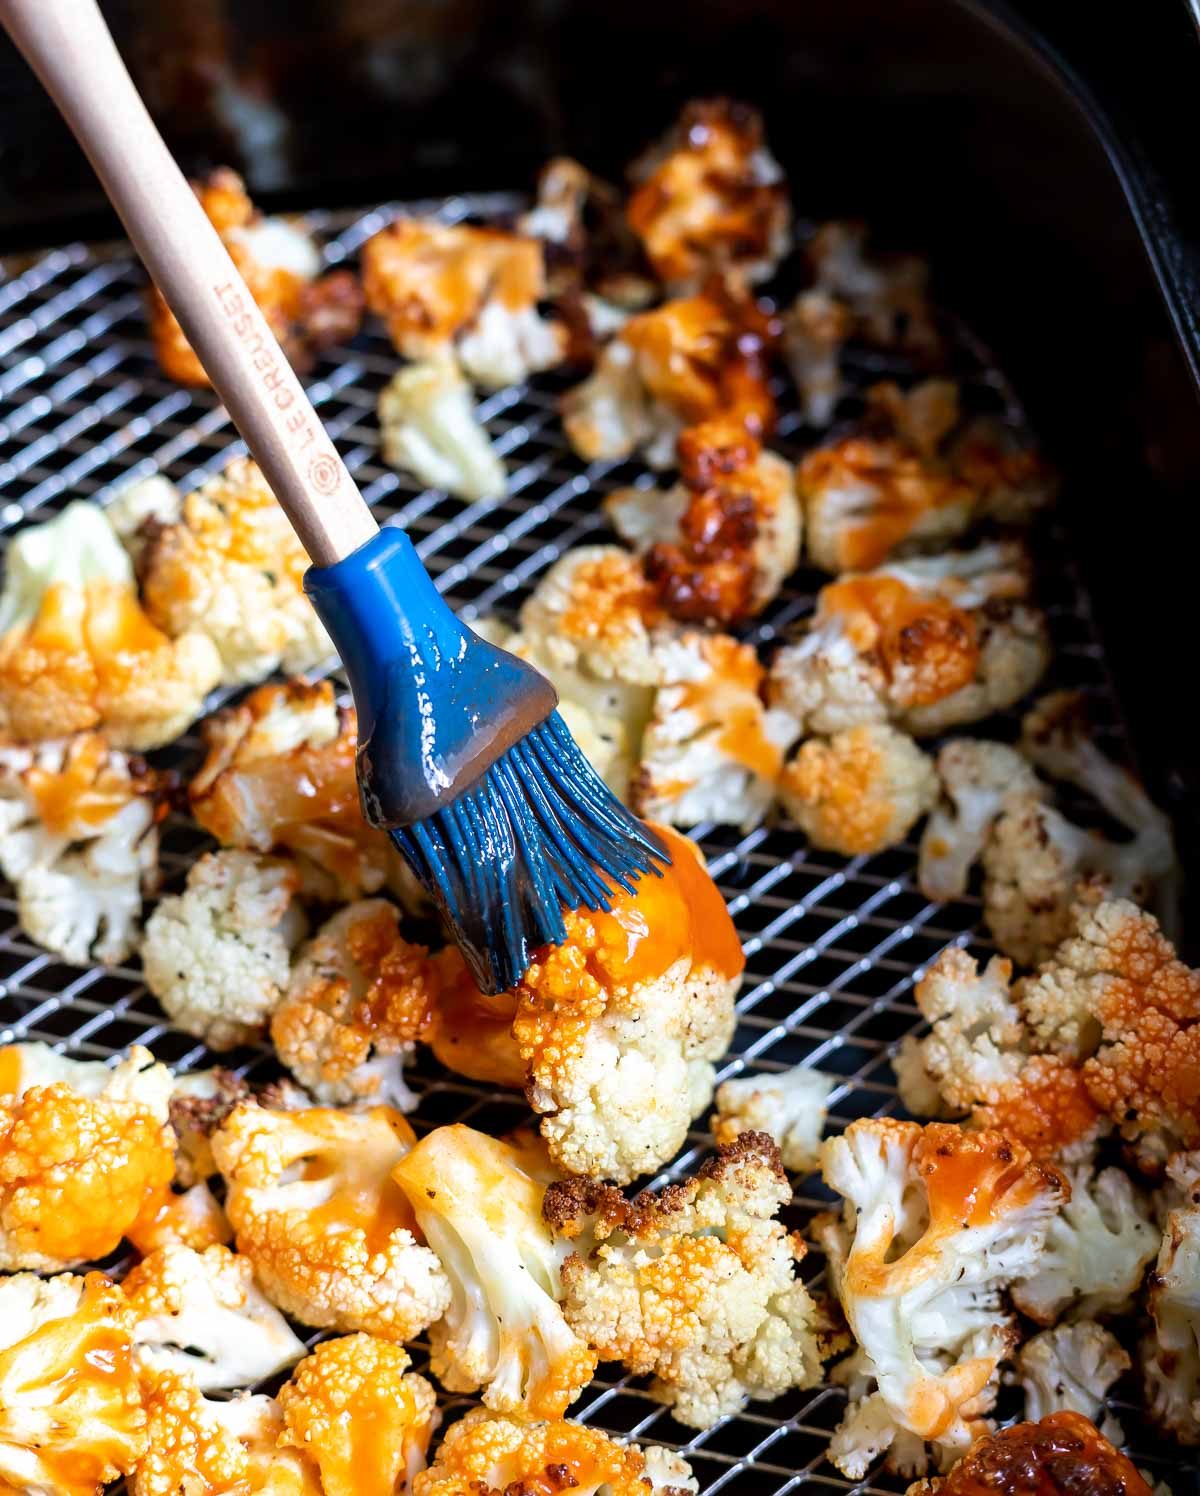 cauliflower in air fryer basket being brushed with buffalo sauce